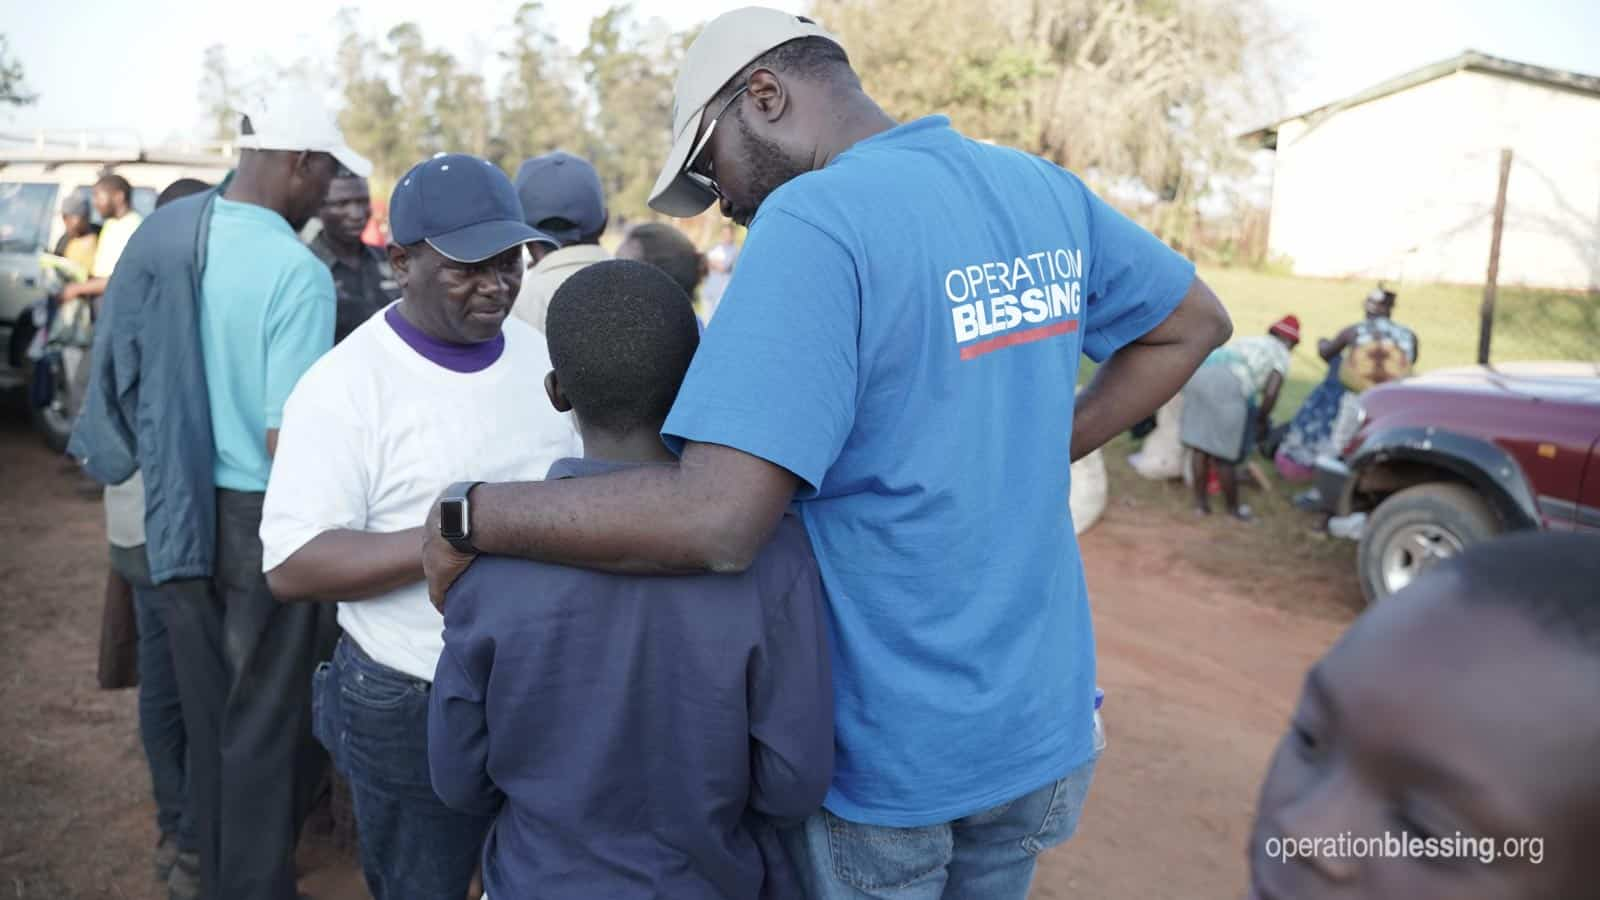 OB Kenya Director, Peter Kimaru, with his arm around a young boy from the camp, cyclone victim